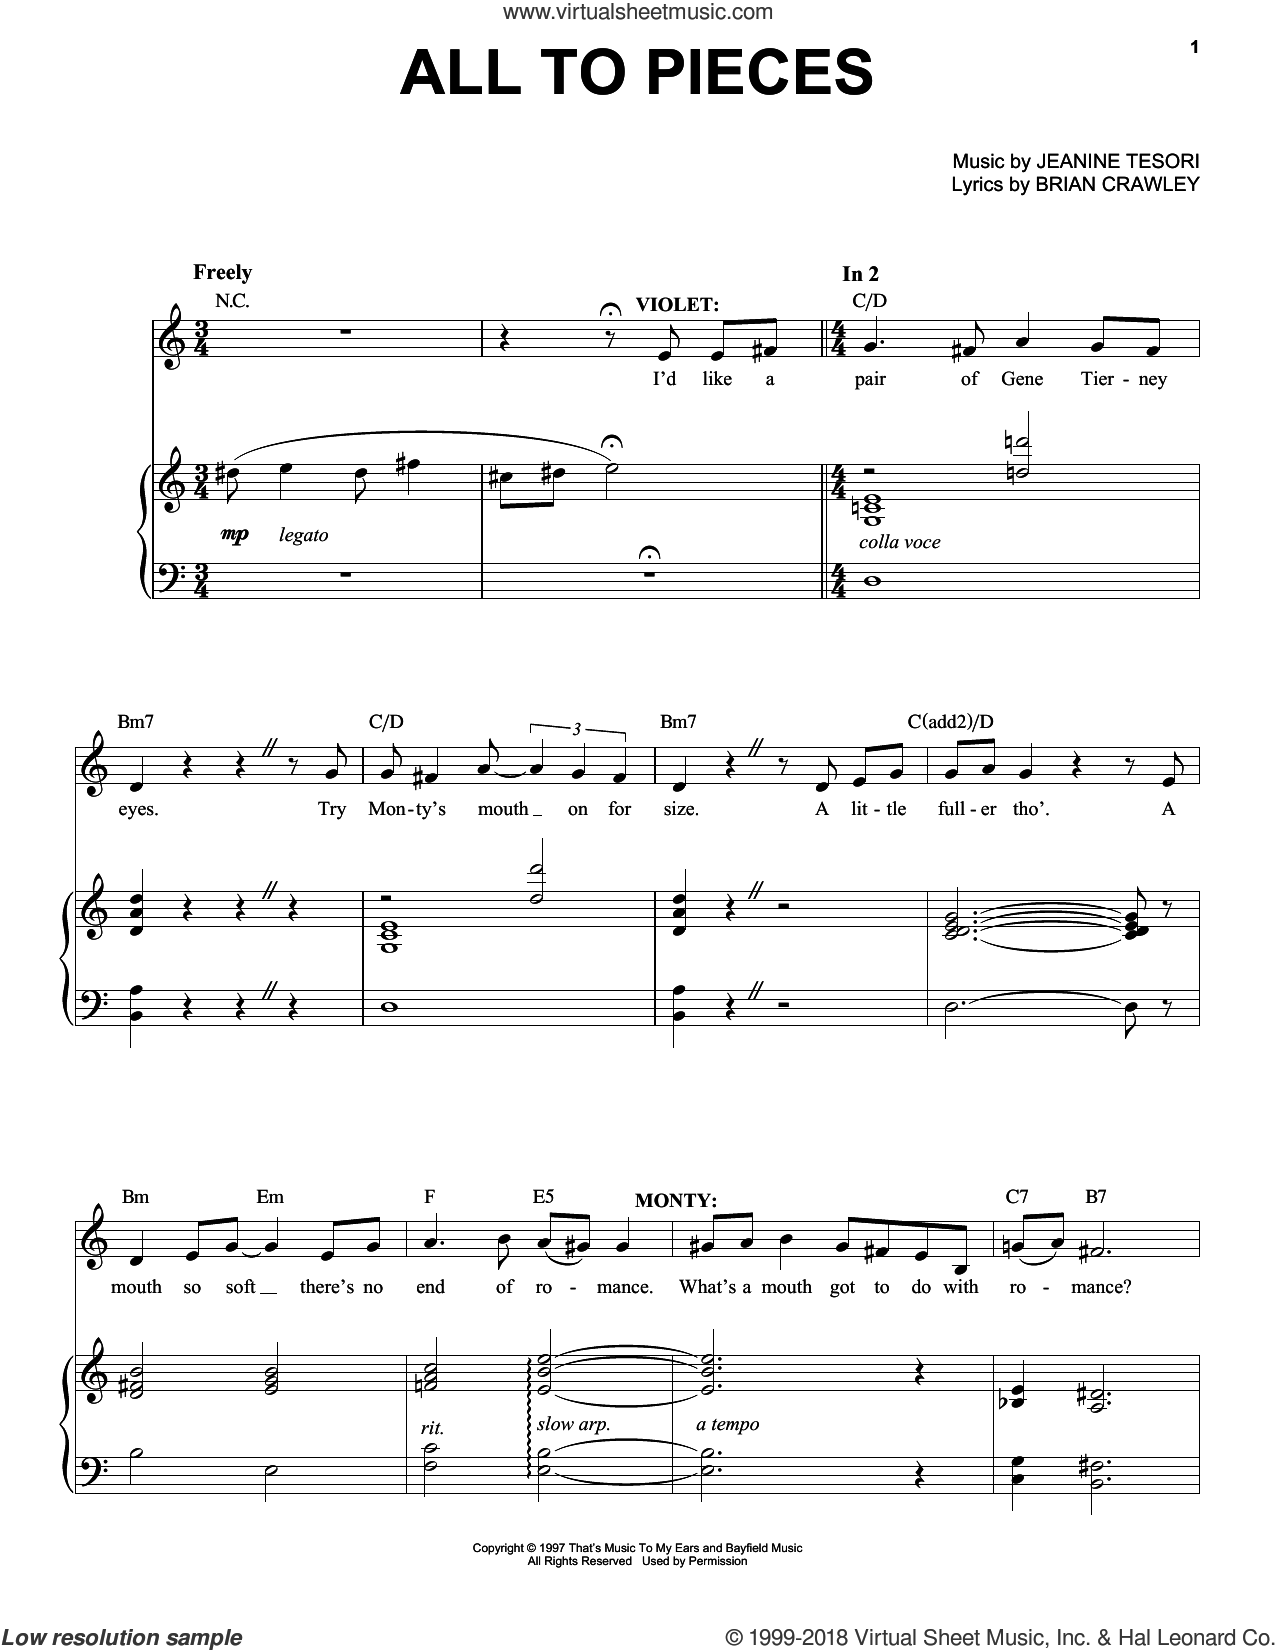 All To Pieces sheet music for voice and piano by Jeanine Tesori and Brian Crawley, intermediate skill level